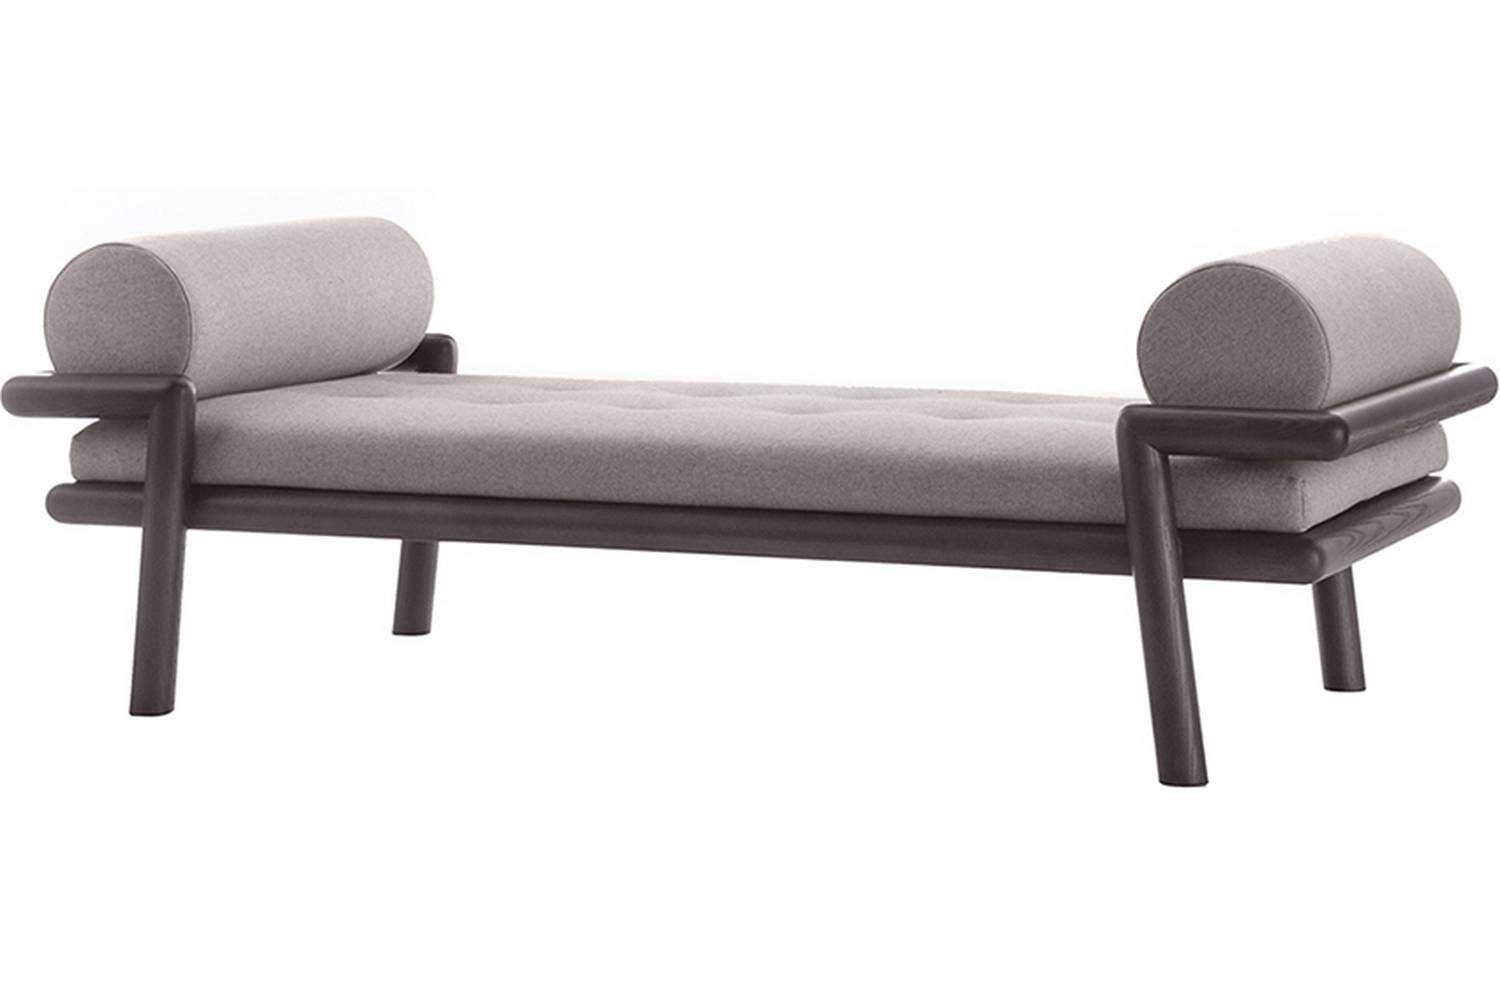 Hold On Day Bed by Nicola Gallizia for Wiener GTV Design